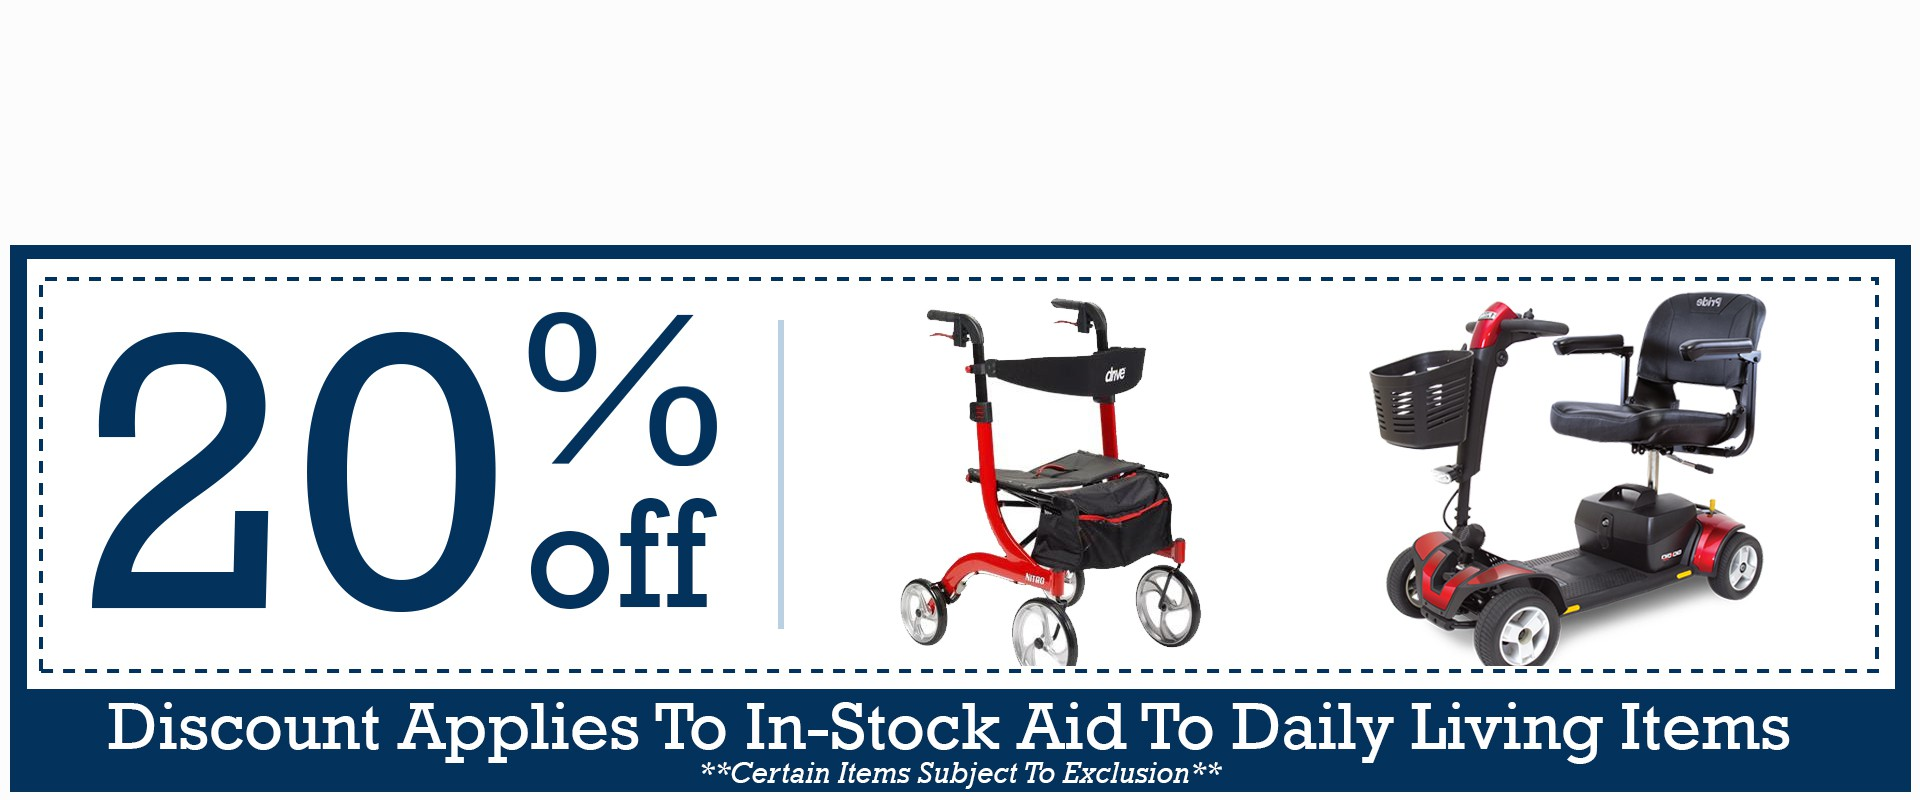 Special Discounts for In-Stock Aid To Daily Living Items The Gulf Coast